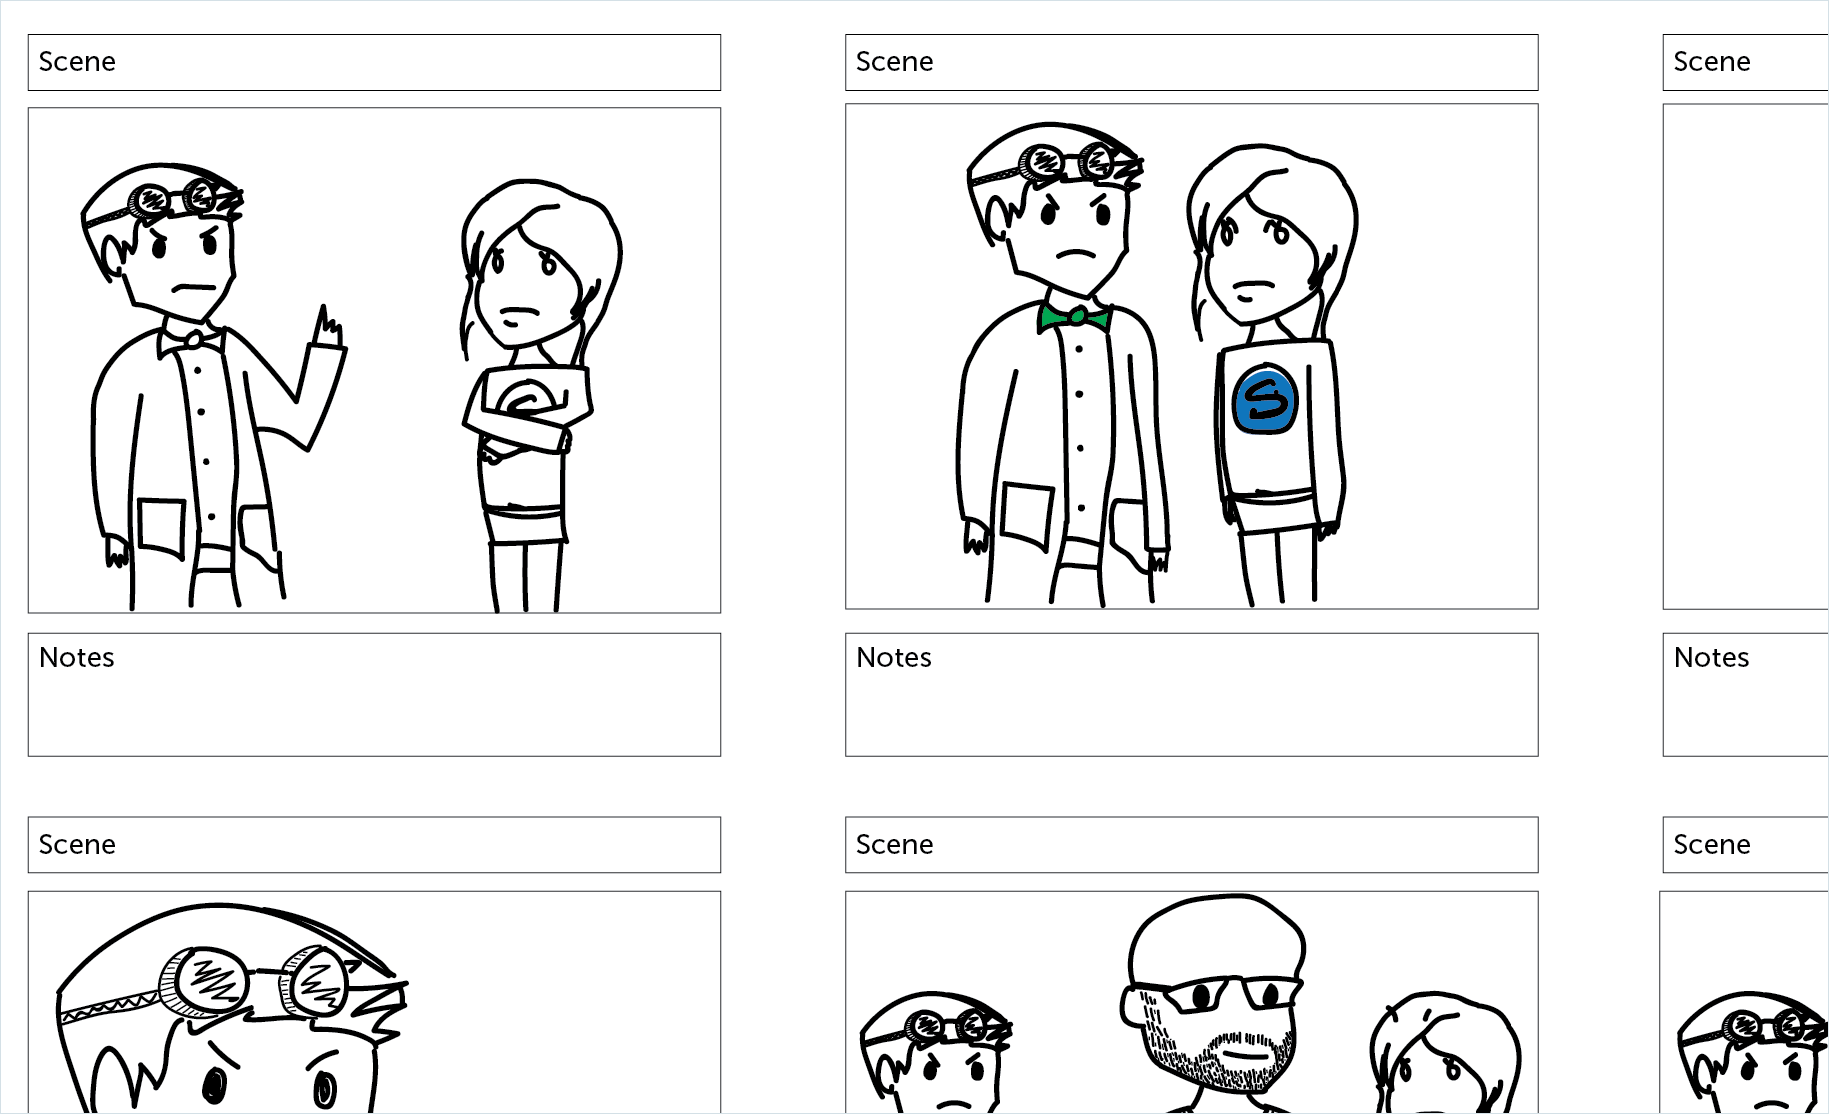 storyboard with hand drawn characters acting out different scenes